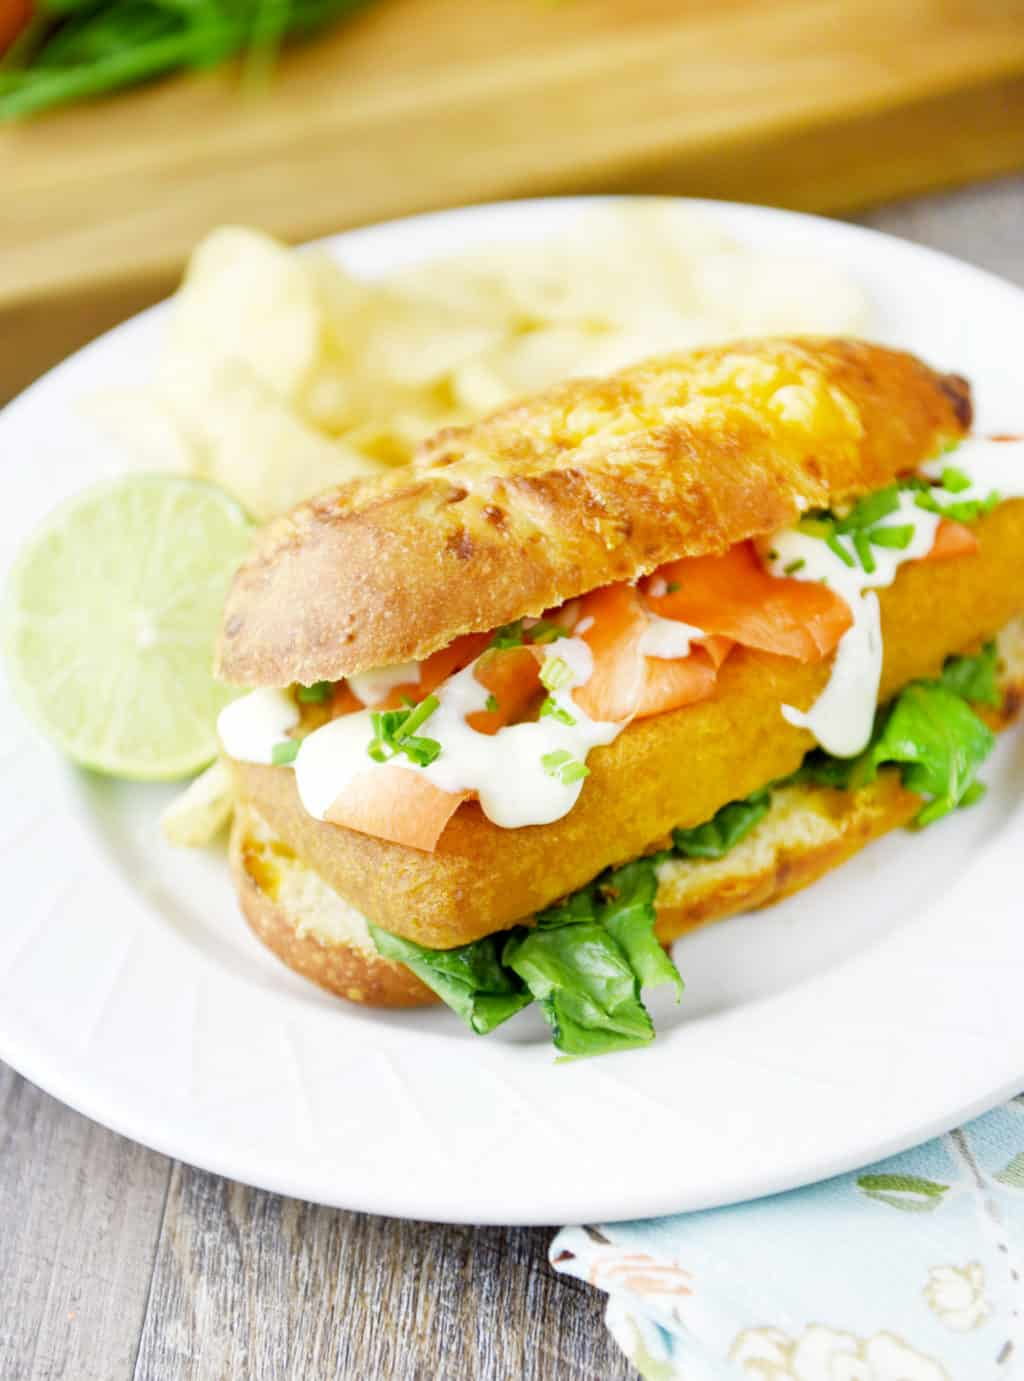 Pub-Style Beer Battered Cod Sandwich with Garlic Lime Sauce!!! Delicious lunch or dinner idea